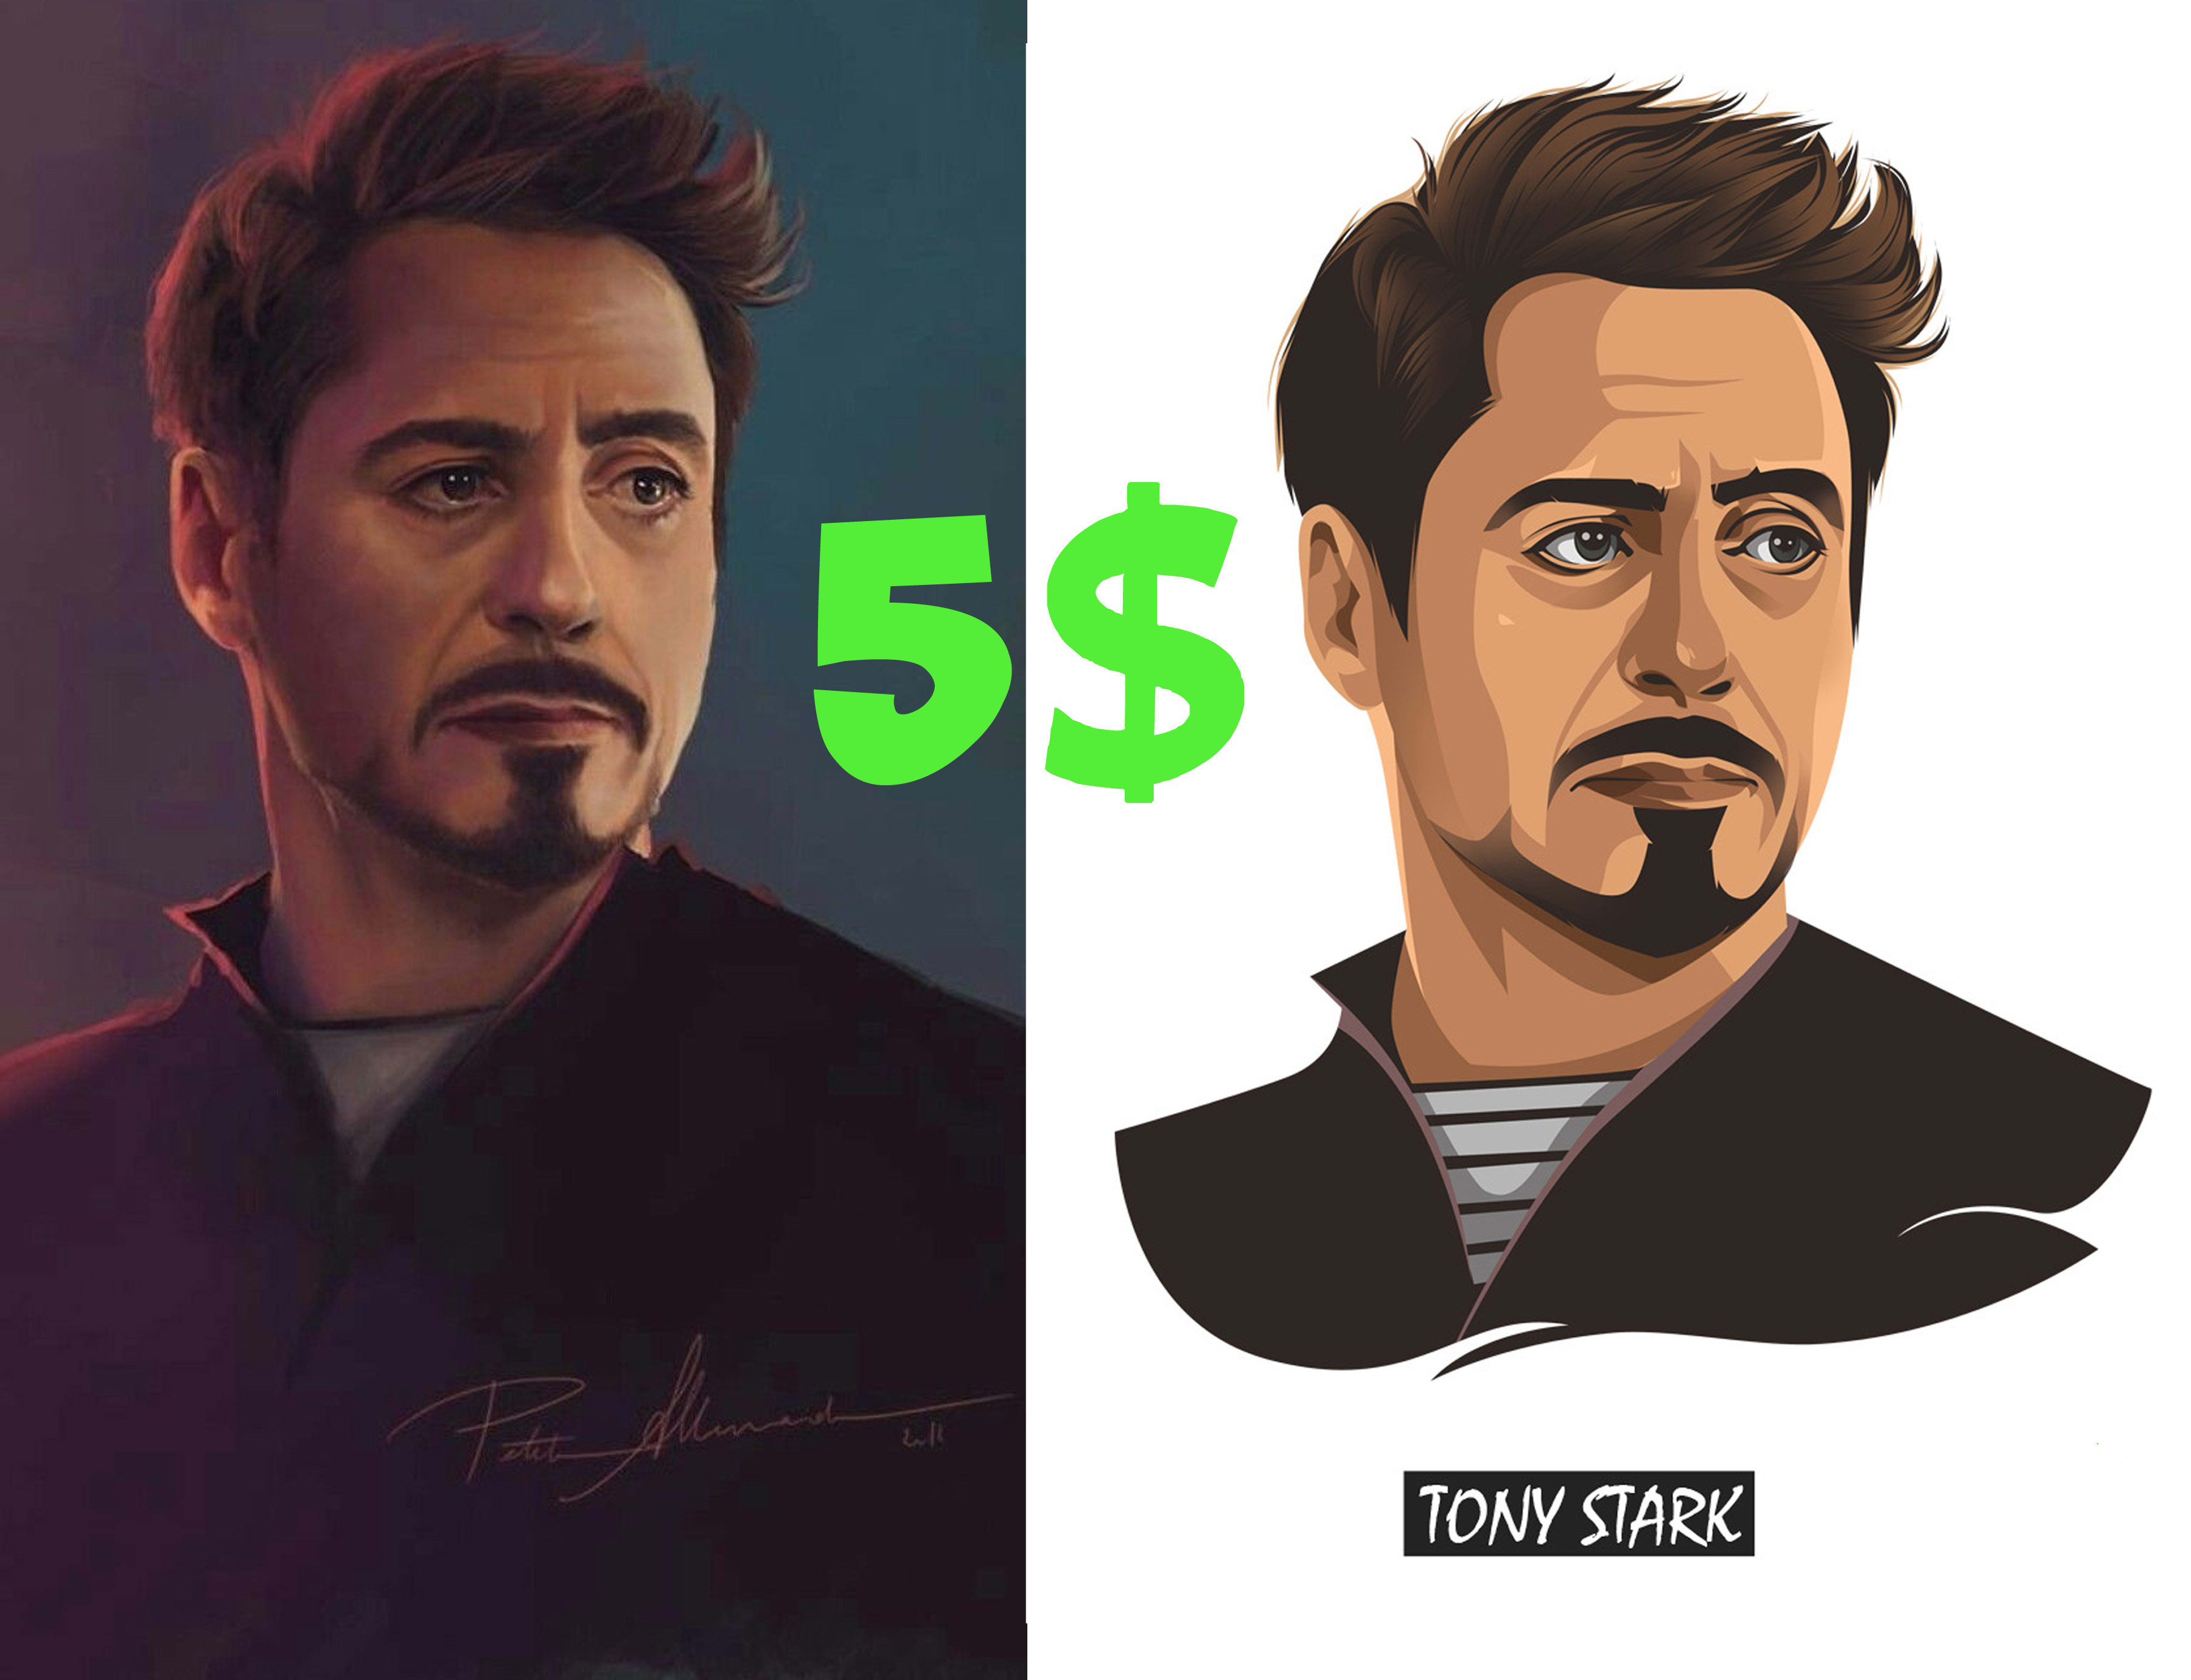 I will draw vector art from your image